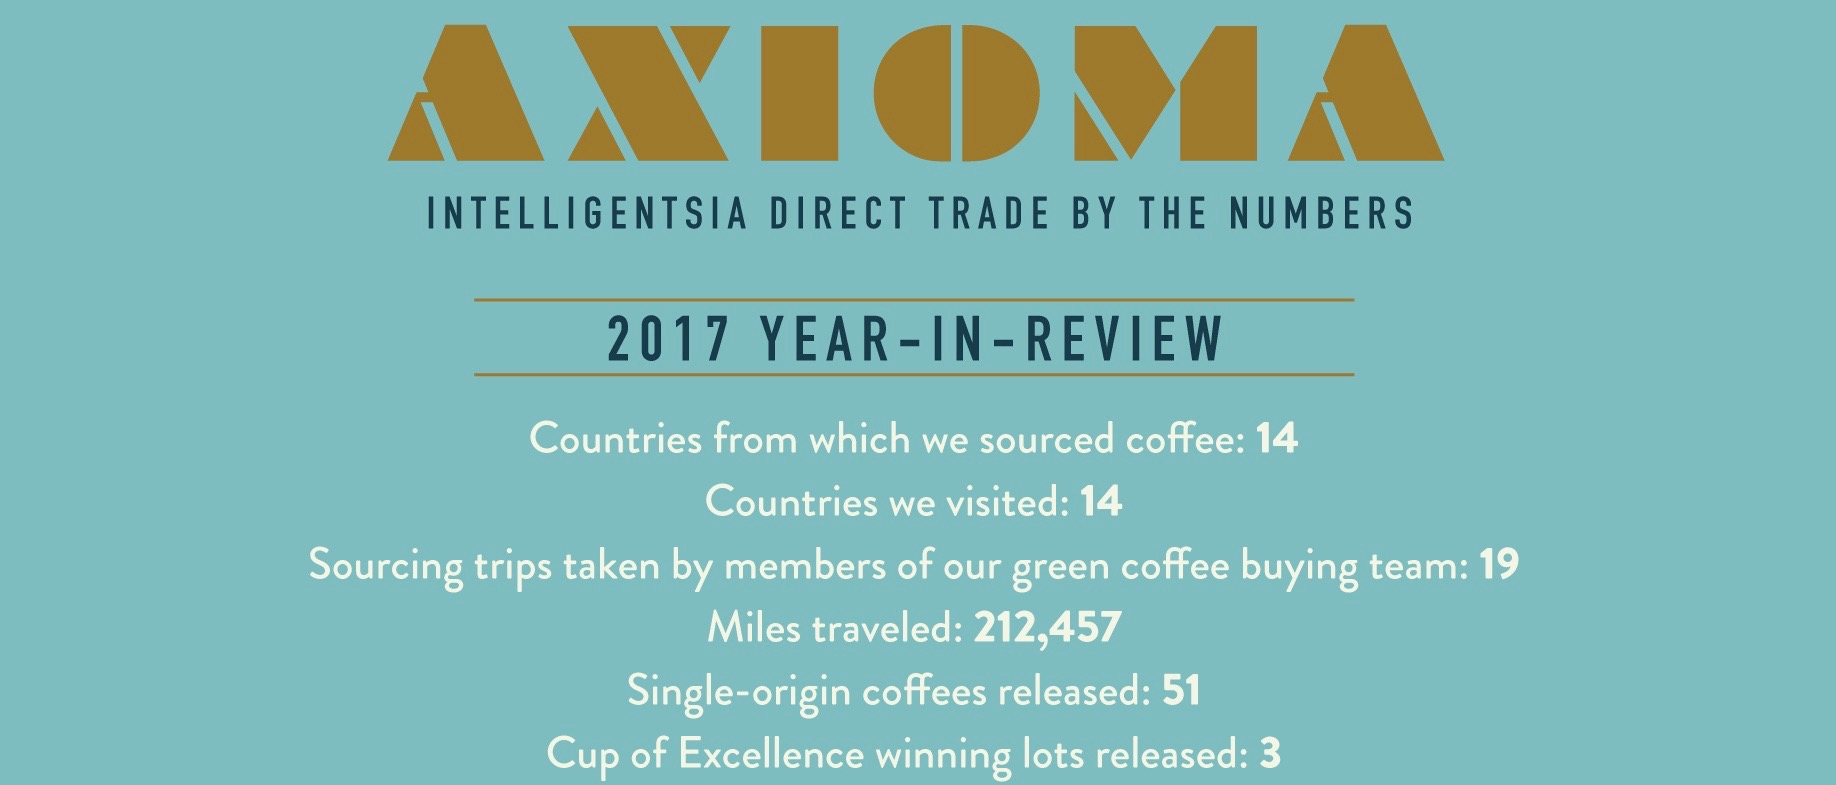 Axioma 2017 Year-in-Review | Blog